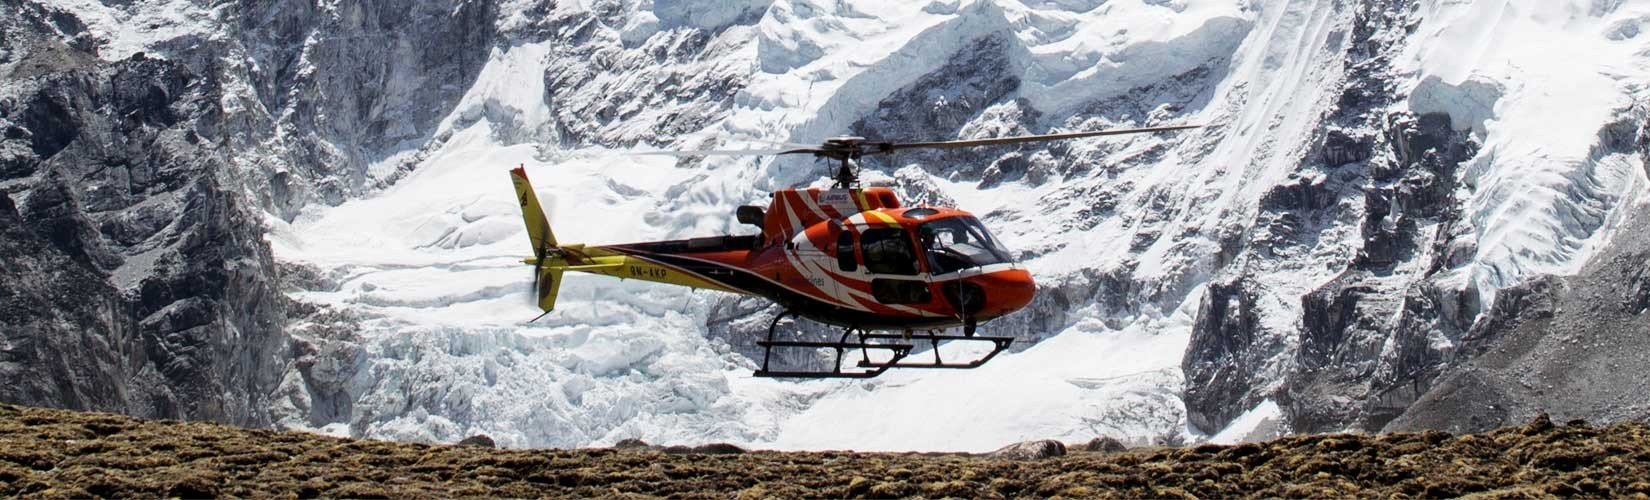 Mount Everest Base Camp Helicopter Day Tour